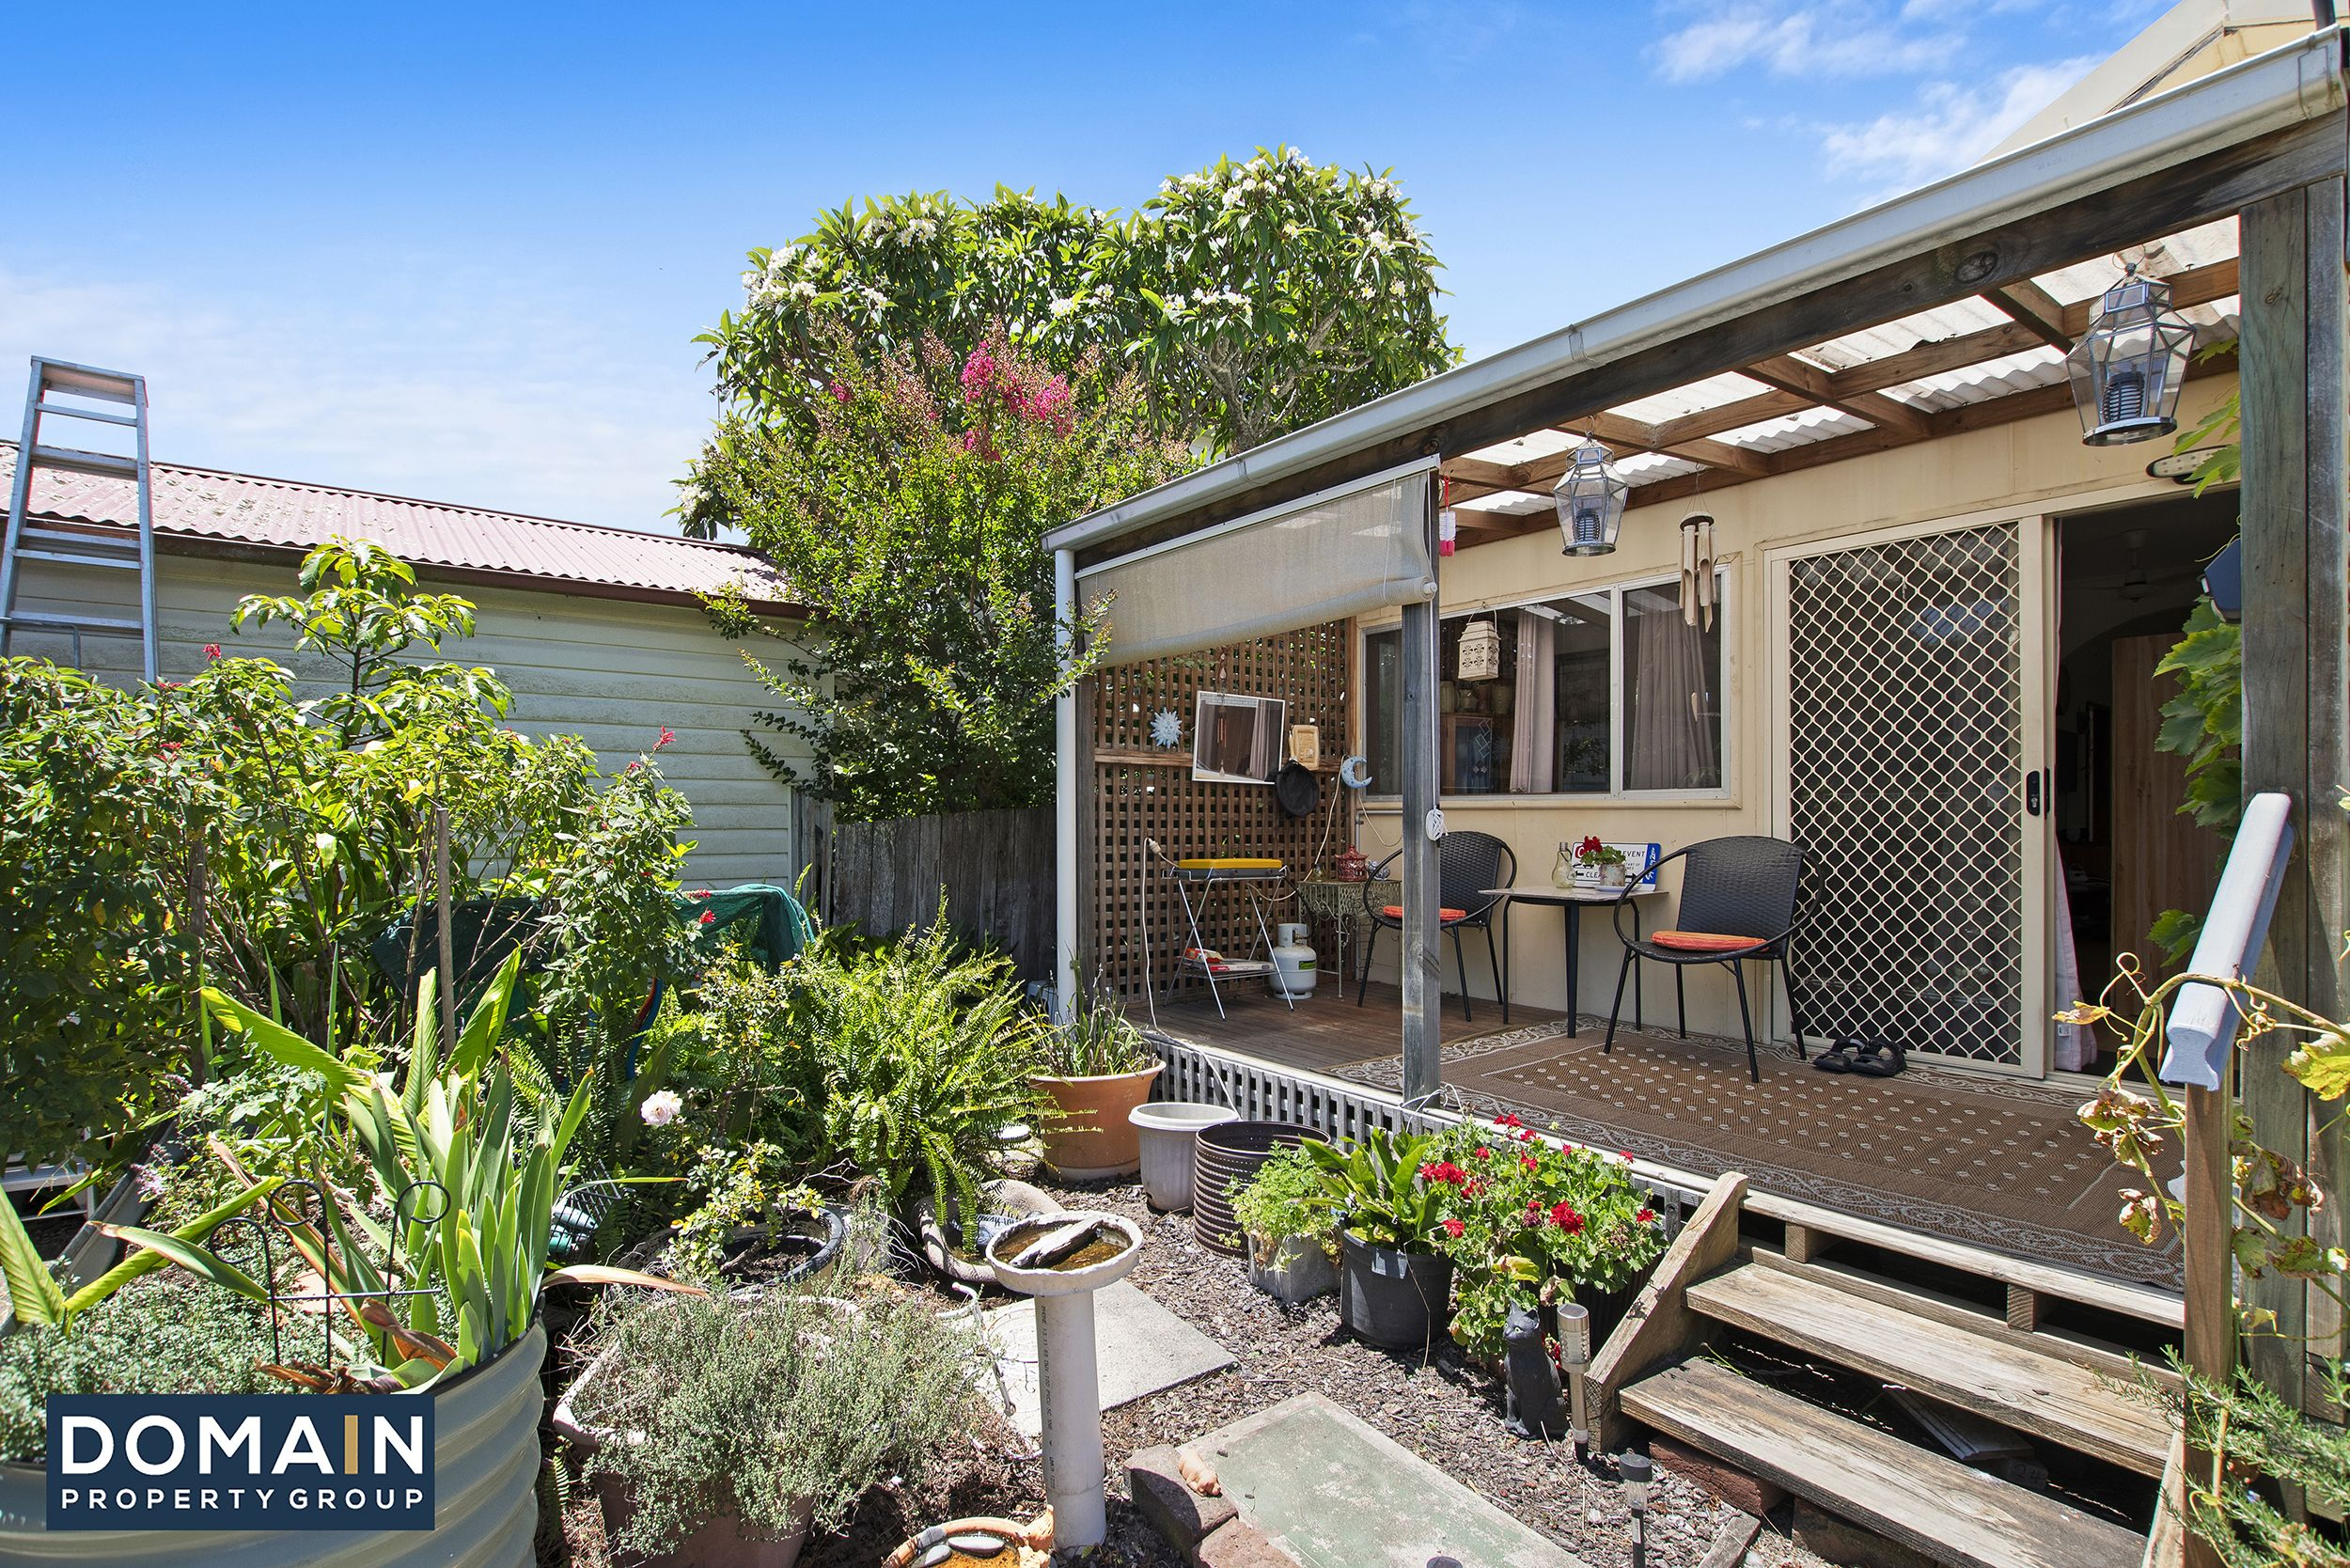 41 Pacific Avenue Ettalong Beach 2257